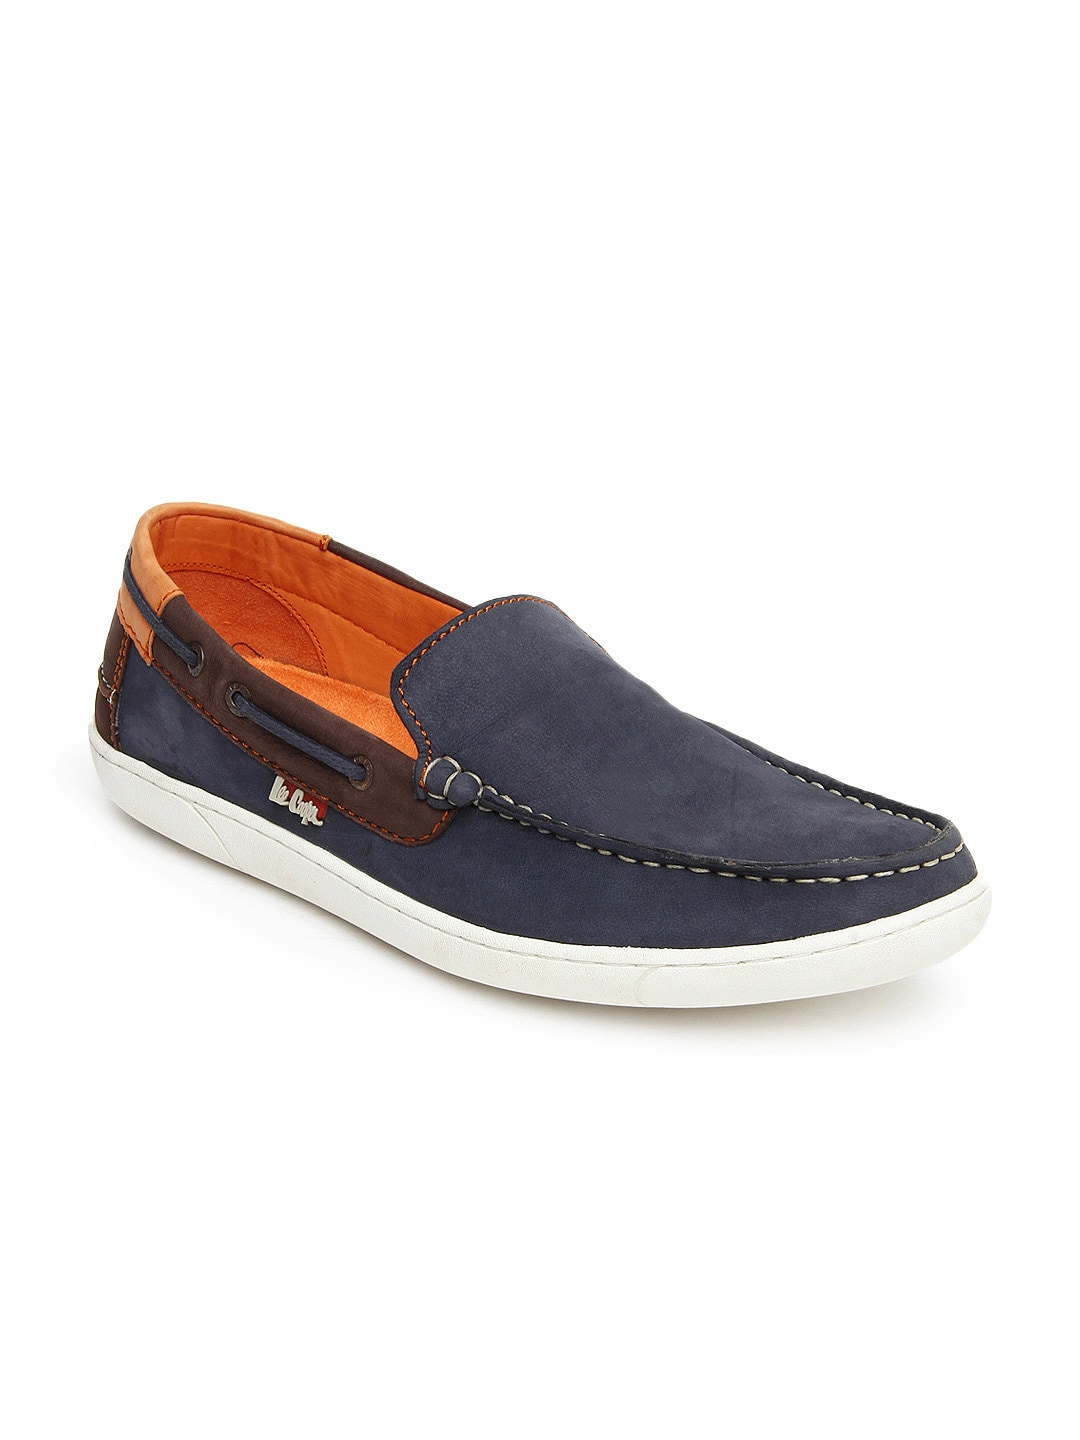 58c7643739f Lee Cooper Loafers - Buy Lee Cooper Loafers online in India